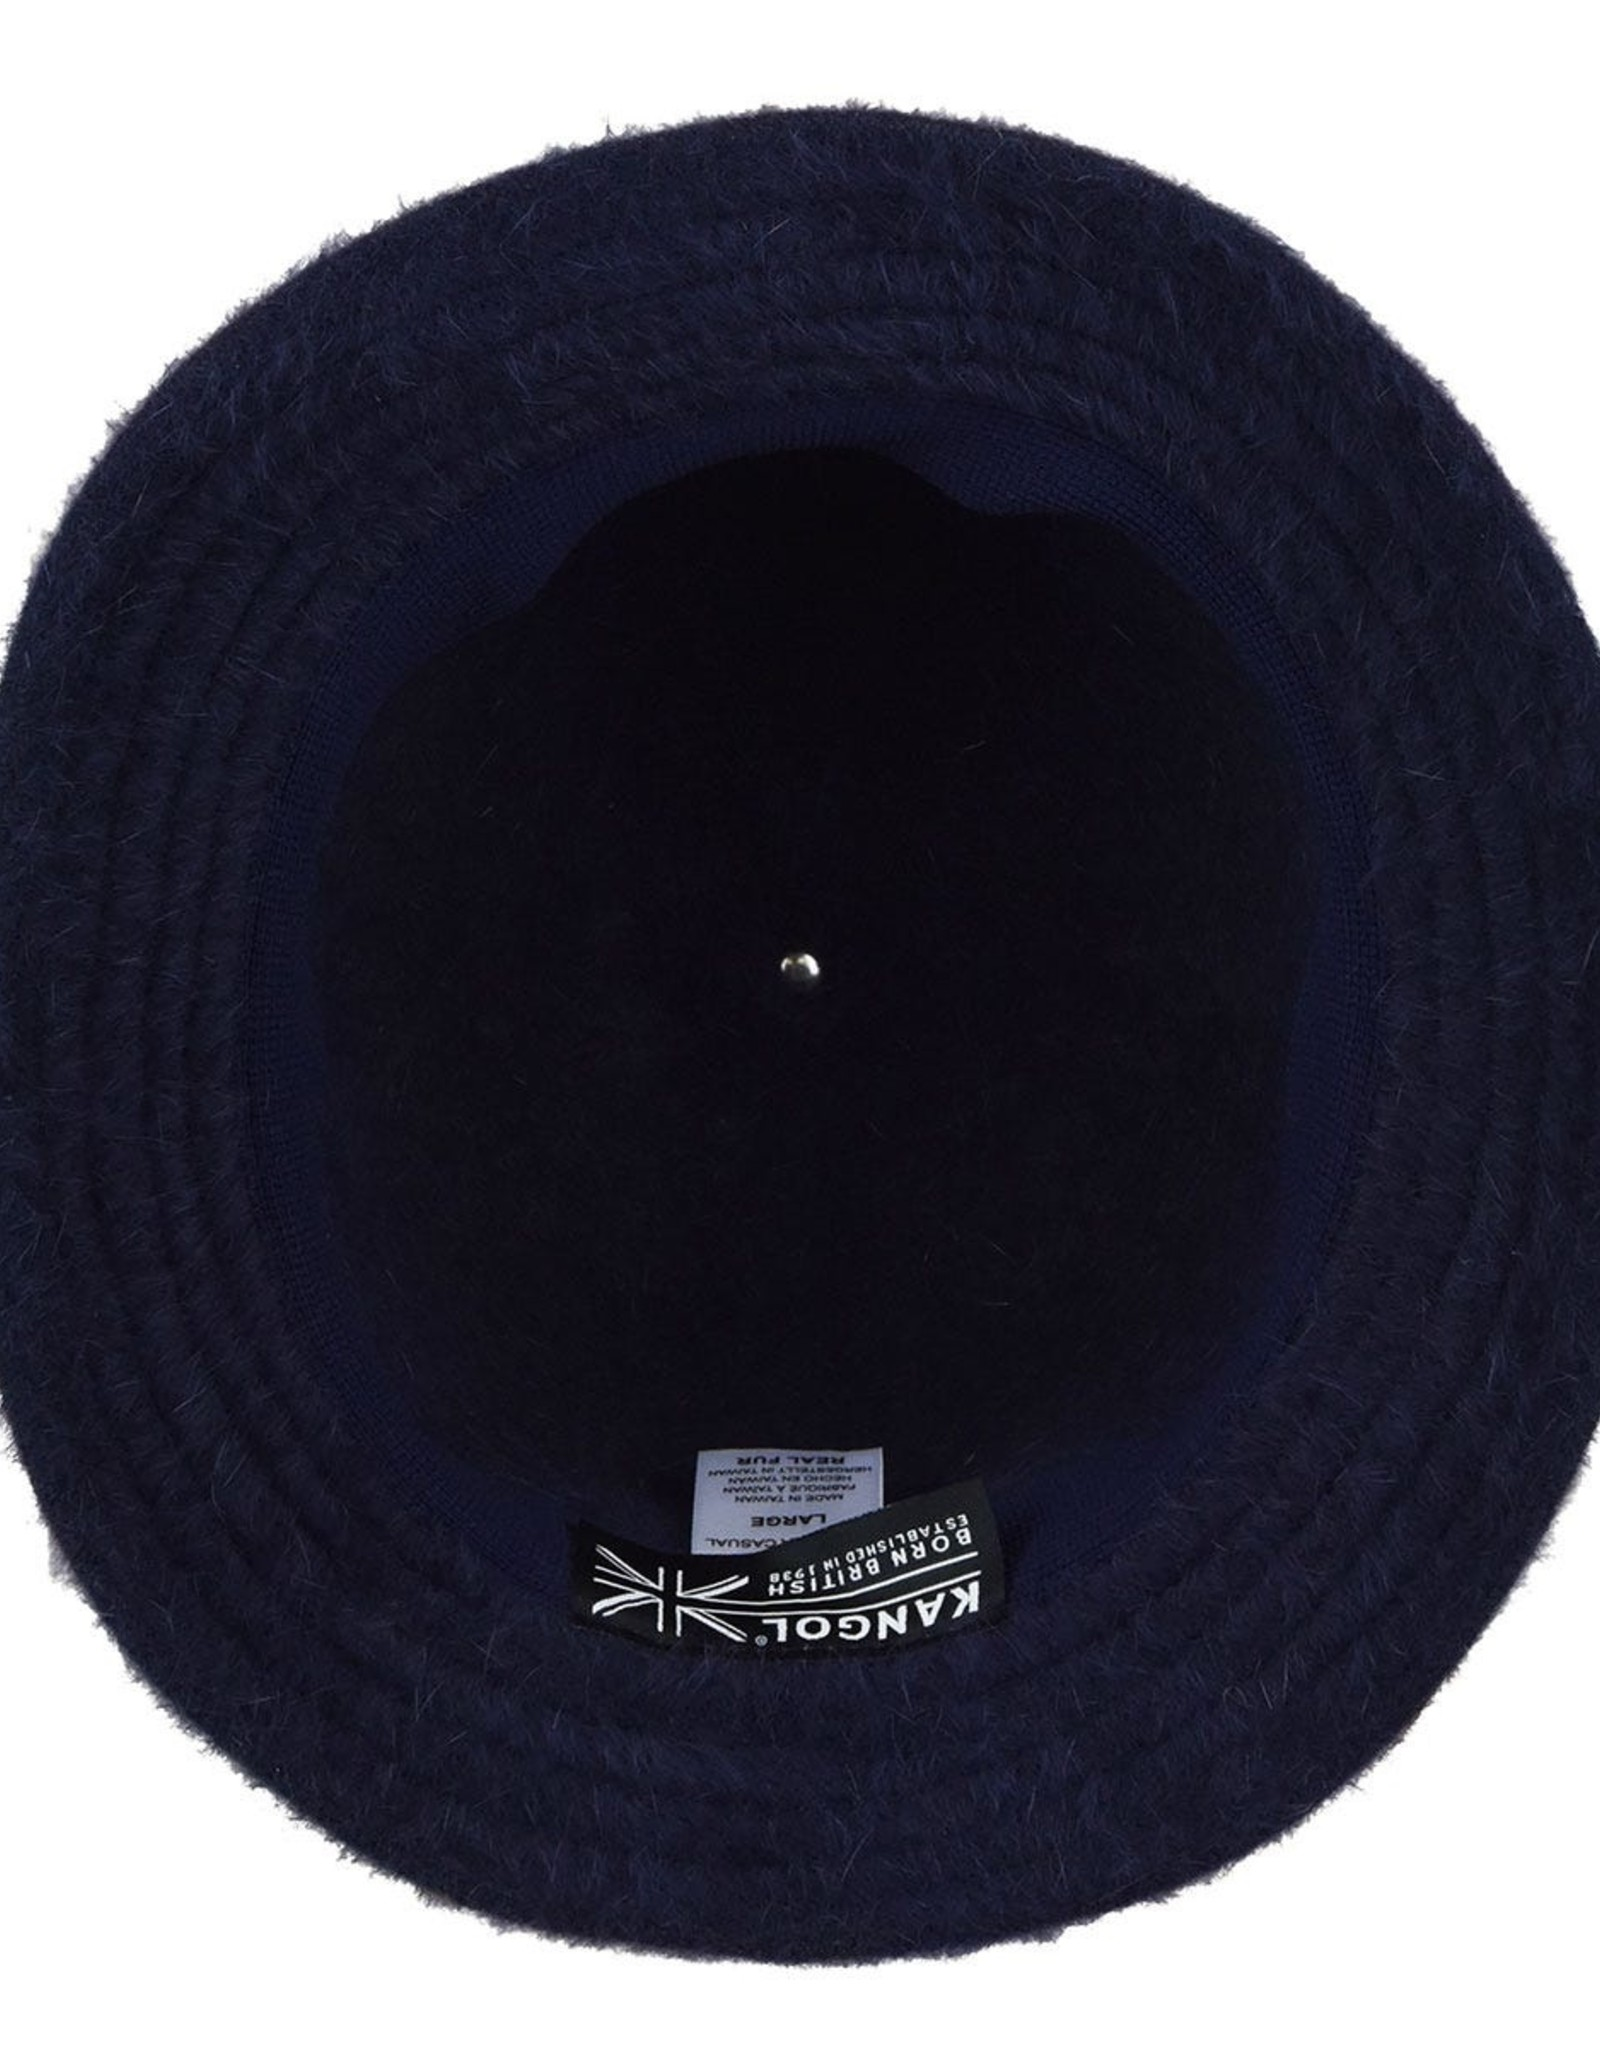 kangol Kangol Fugora casual hat navy Medium